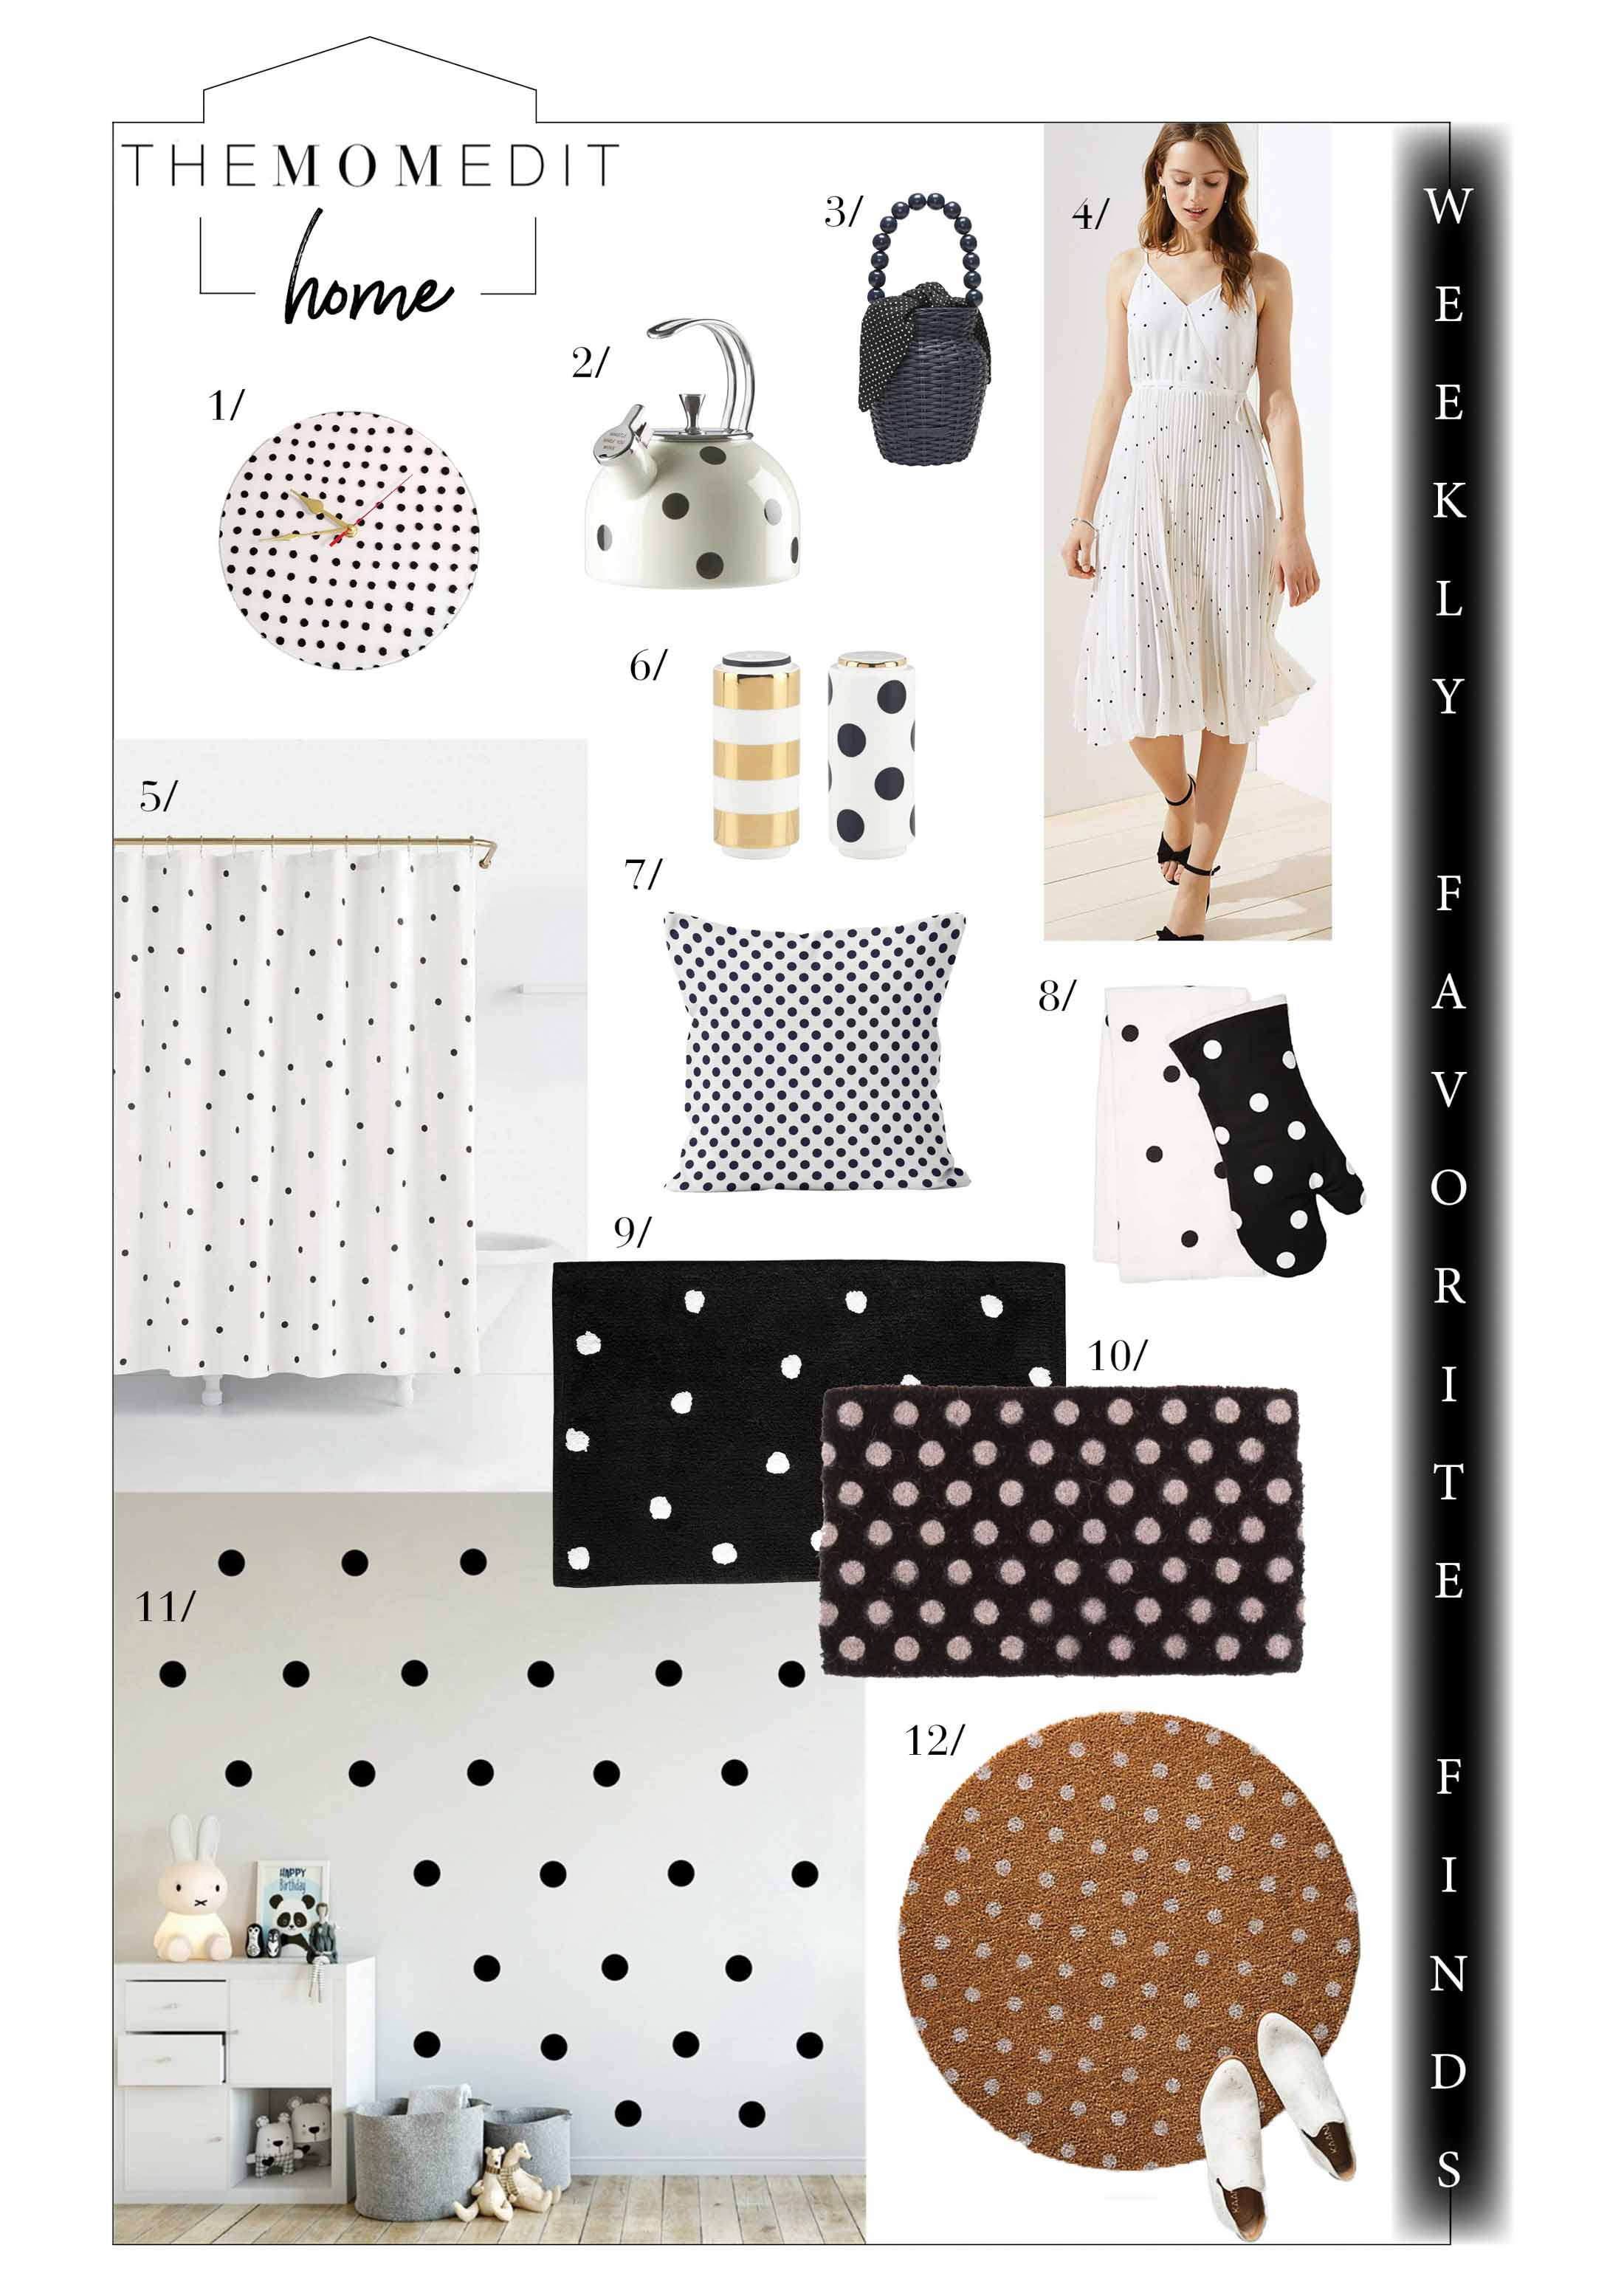 We're connecting the dots for the weekly favorite finds — polka dots specifically. In the kitchen, in the bathroom, for wall art decor...plus, the sales.